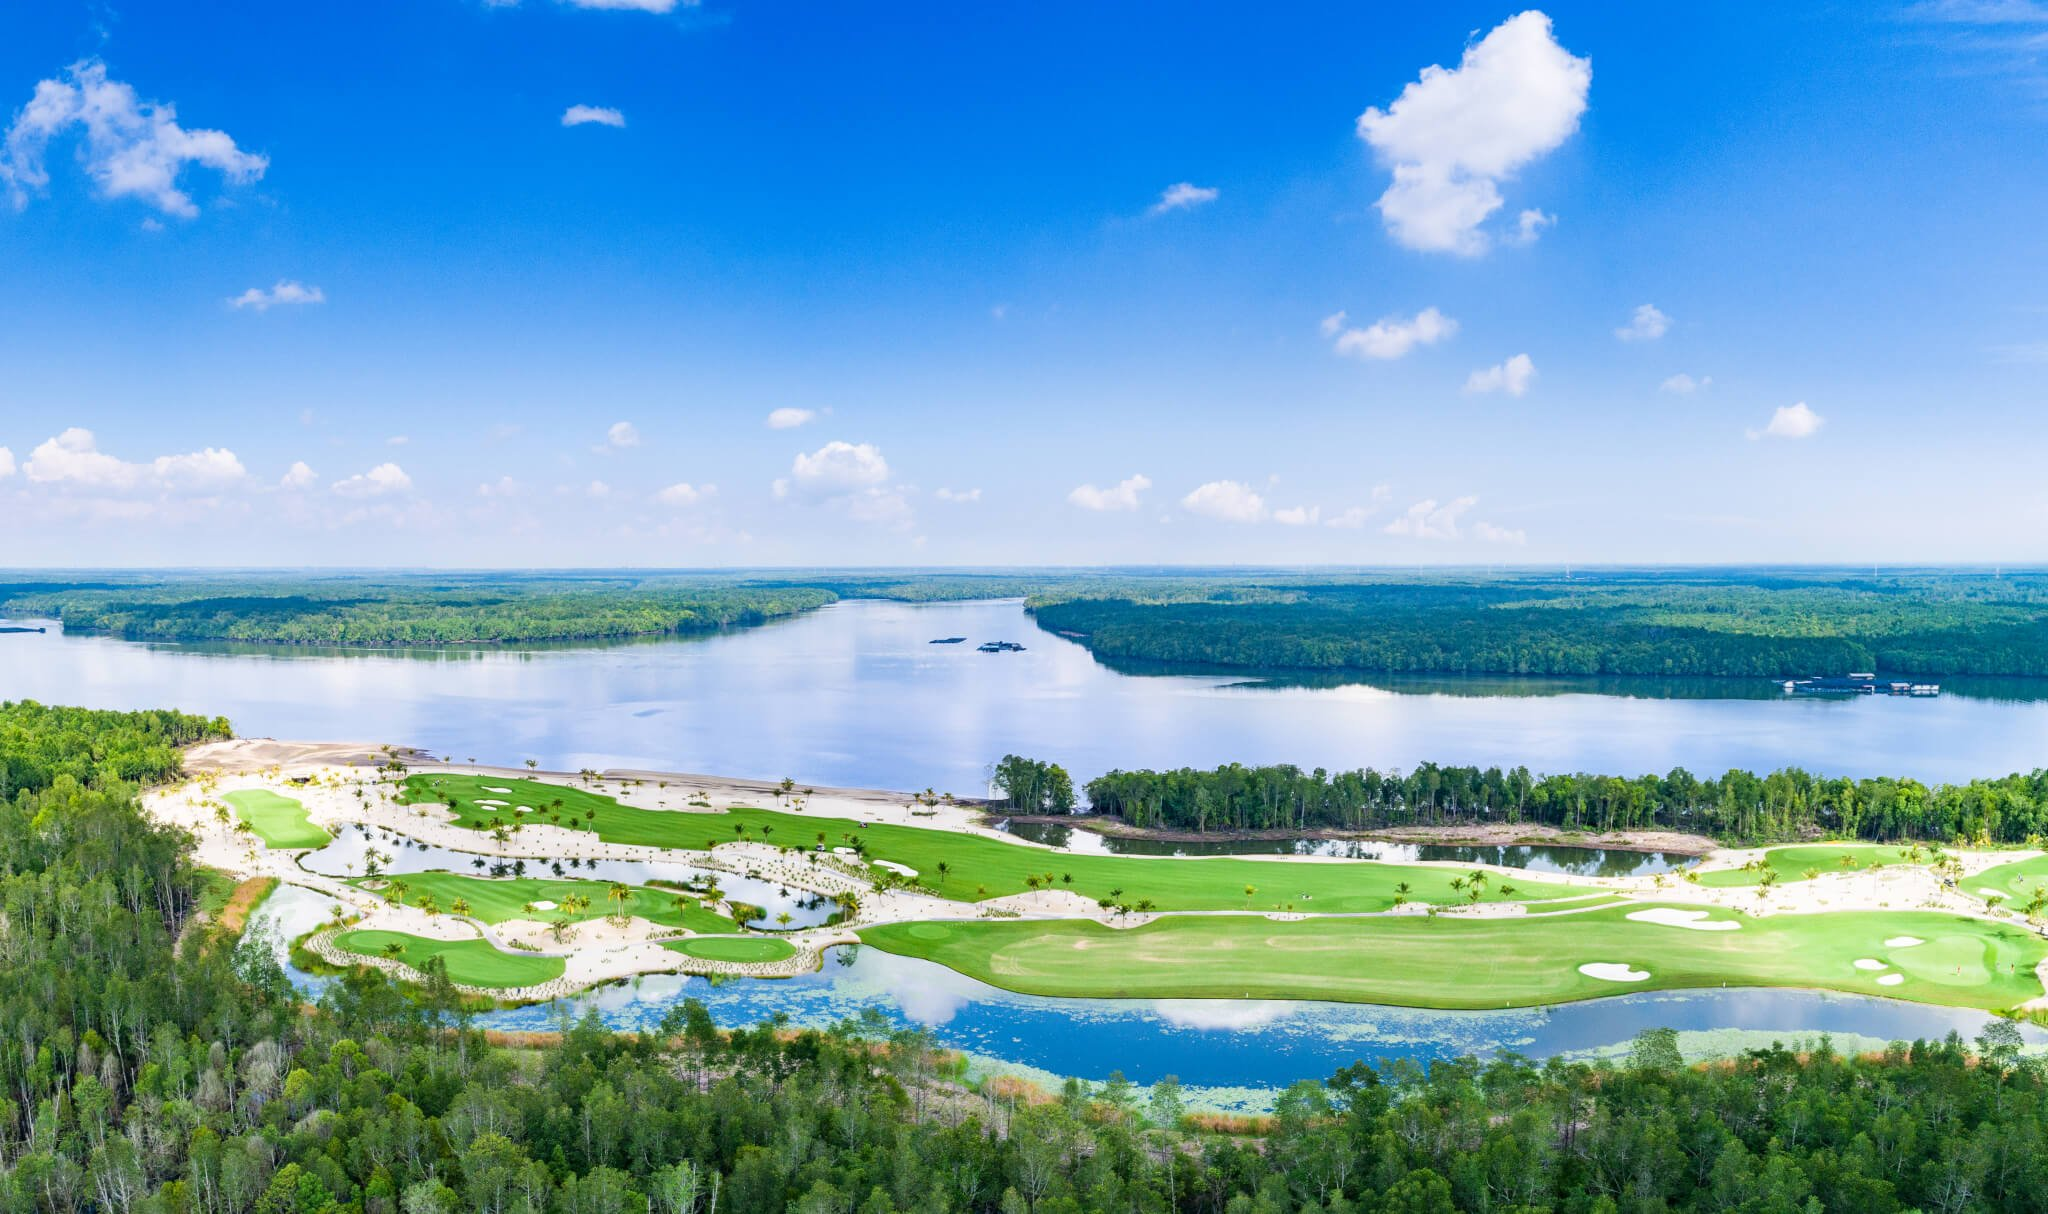 forest city golf course | forest city golf resort | forest city golf resort johor